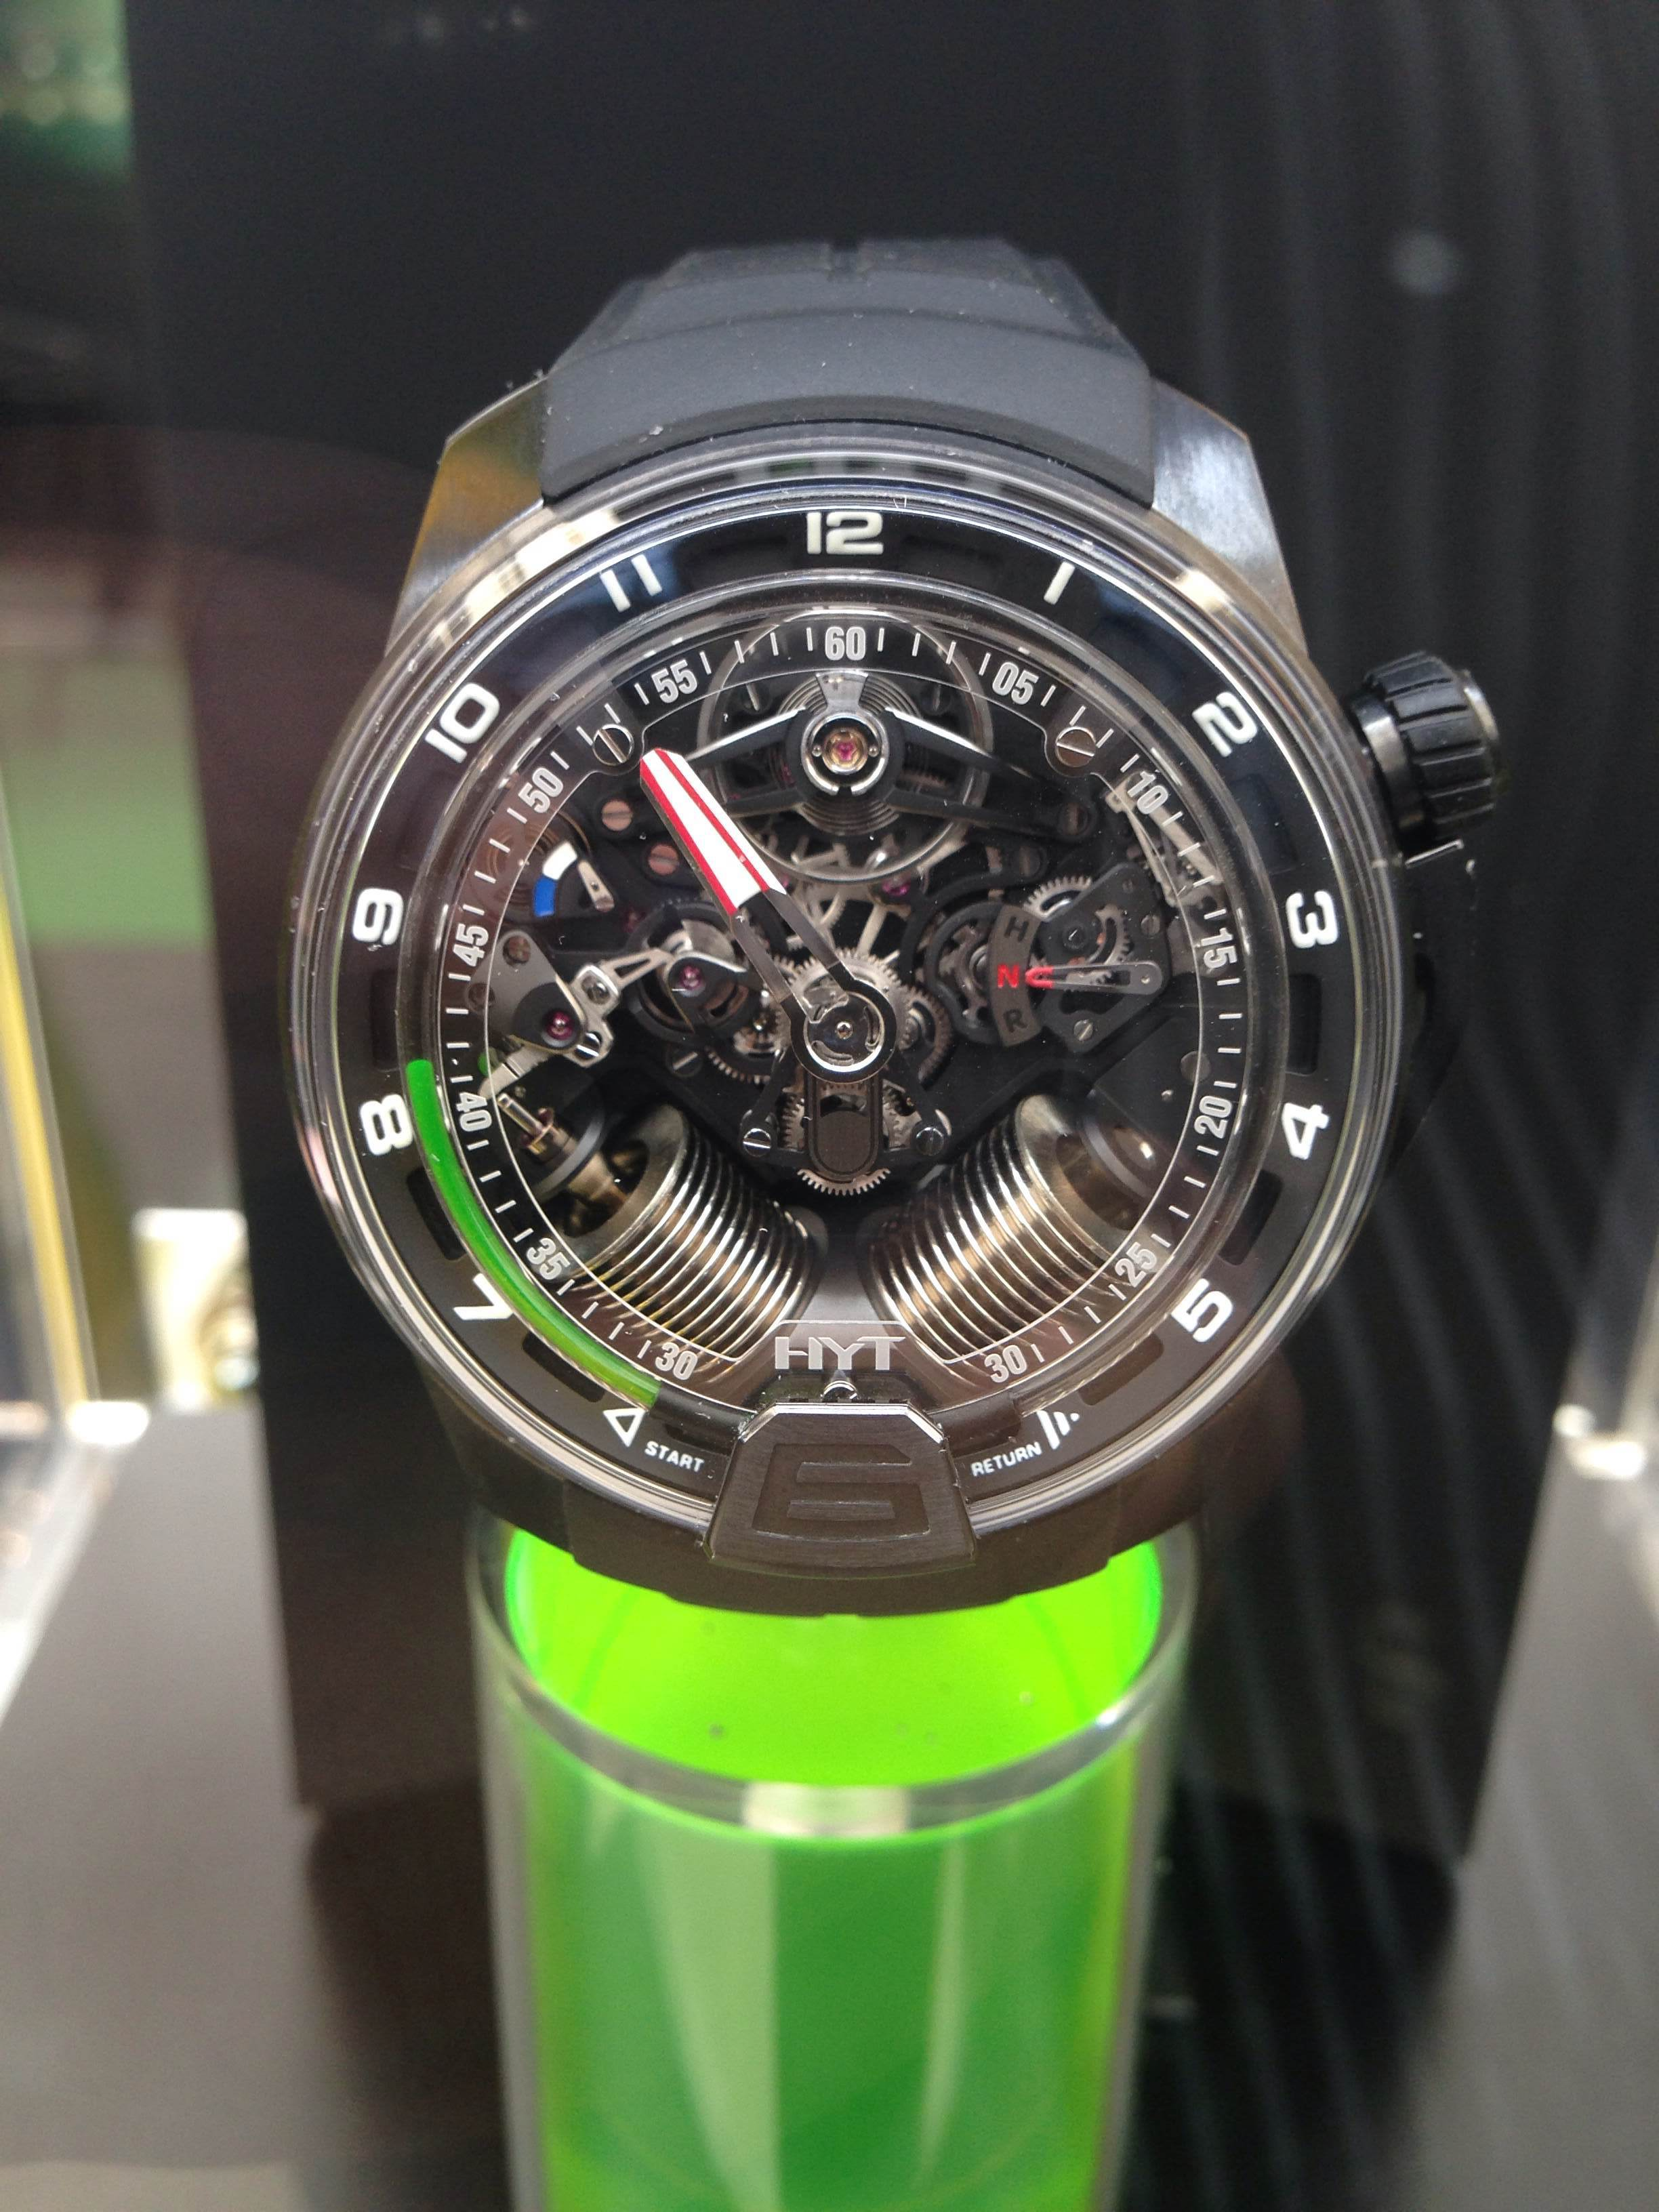 How to make the watch more understandable, just make interesting and colourful stand.